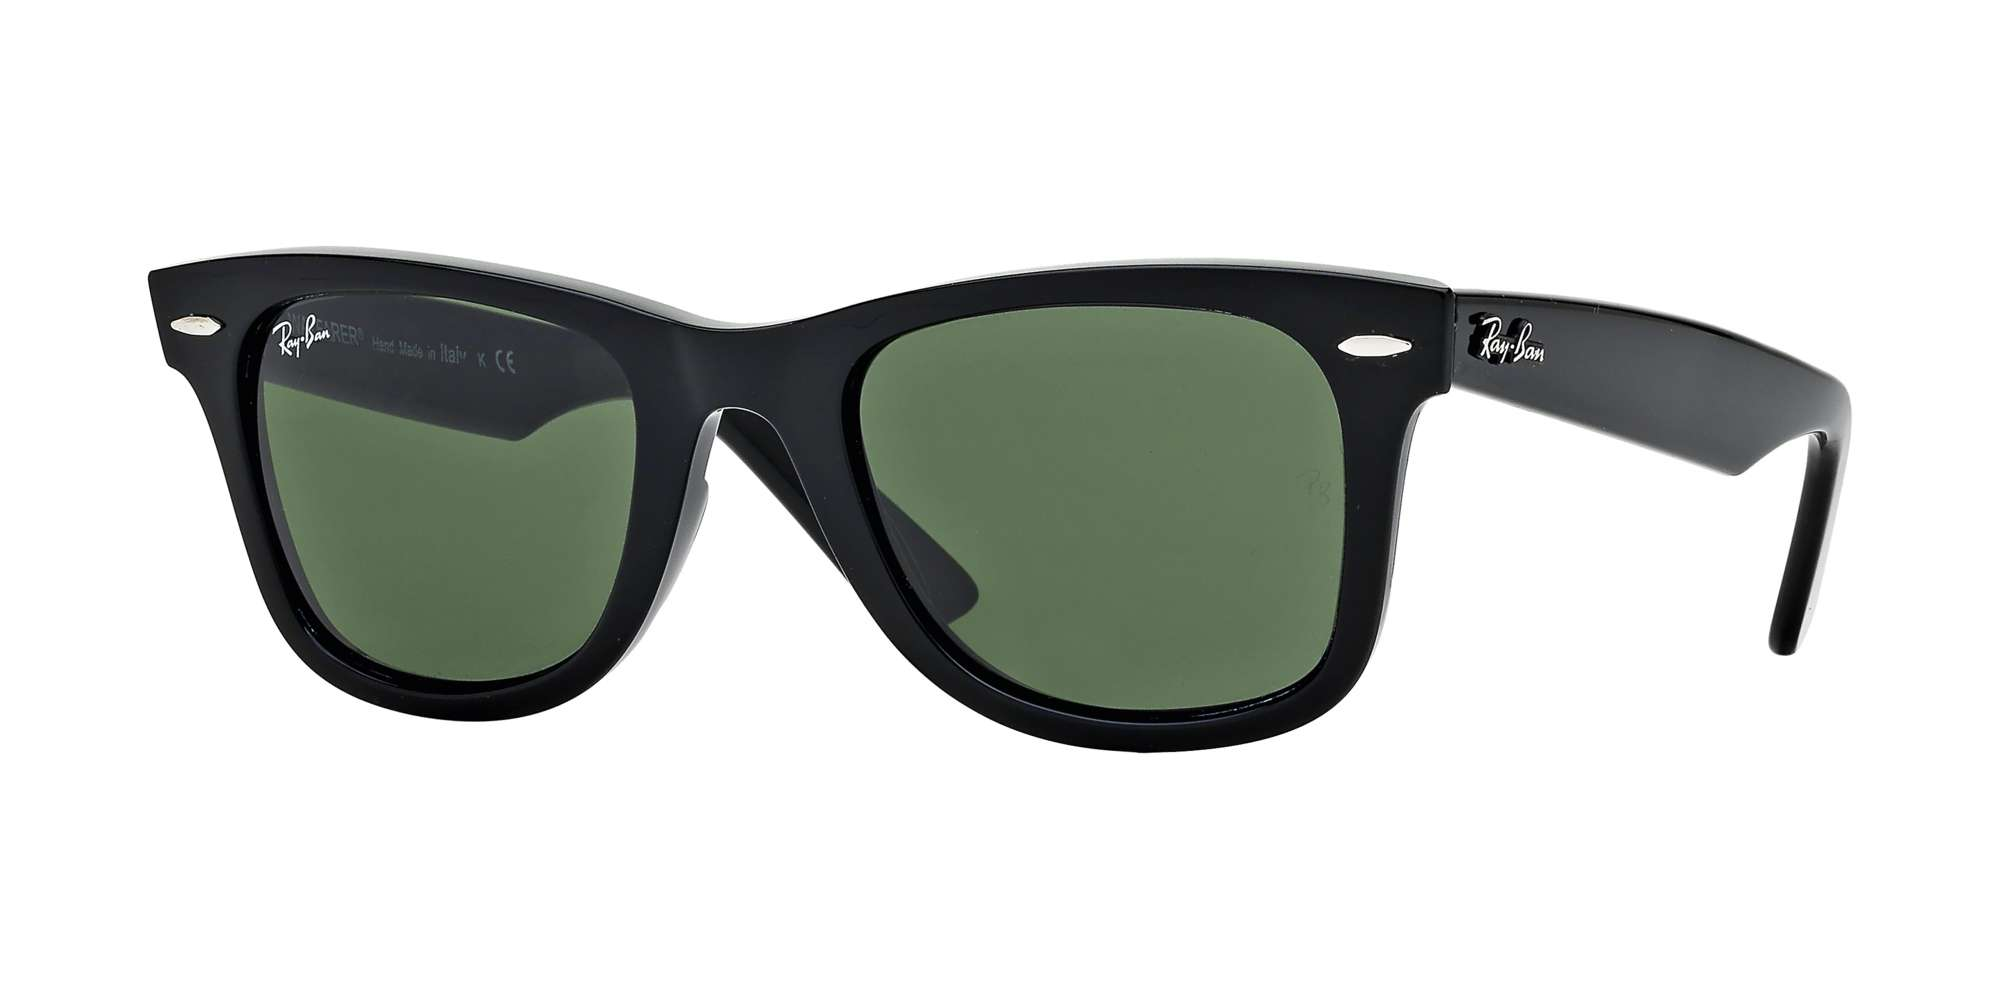 BLACK / CRYSTAL GREEN lenses